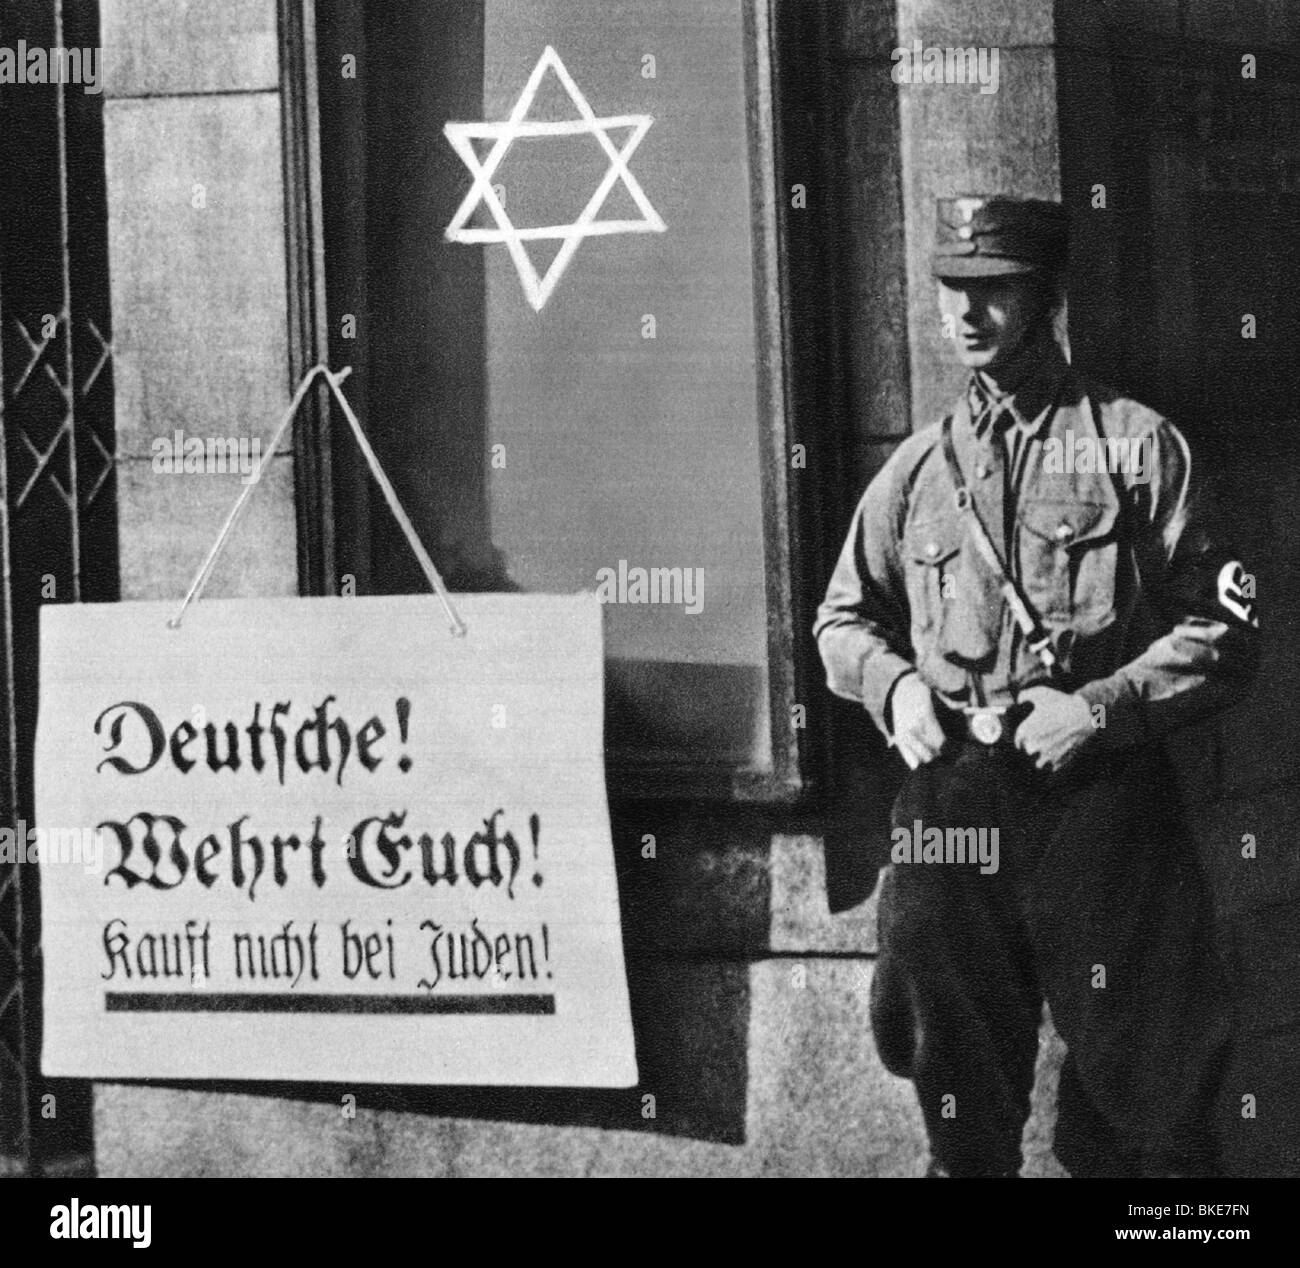 persecution of jews The christian persecution of the jews in ancient rome the beginning of official anti-semitism in europe important documents and quotations.